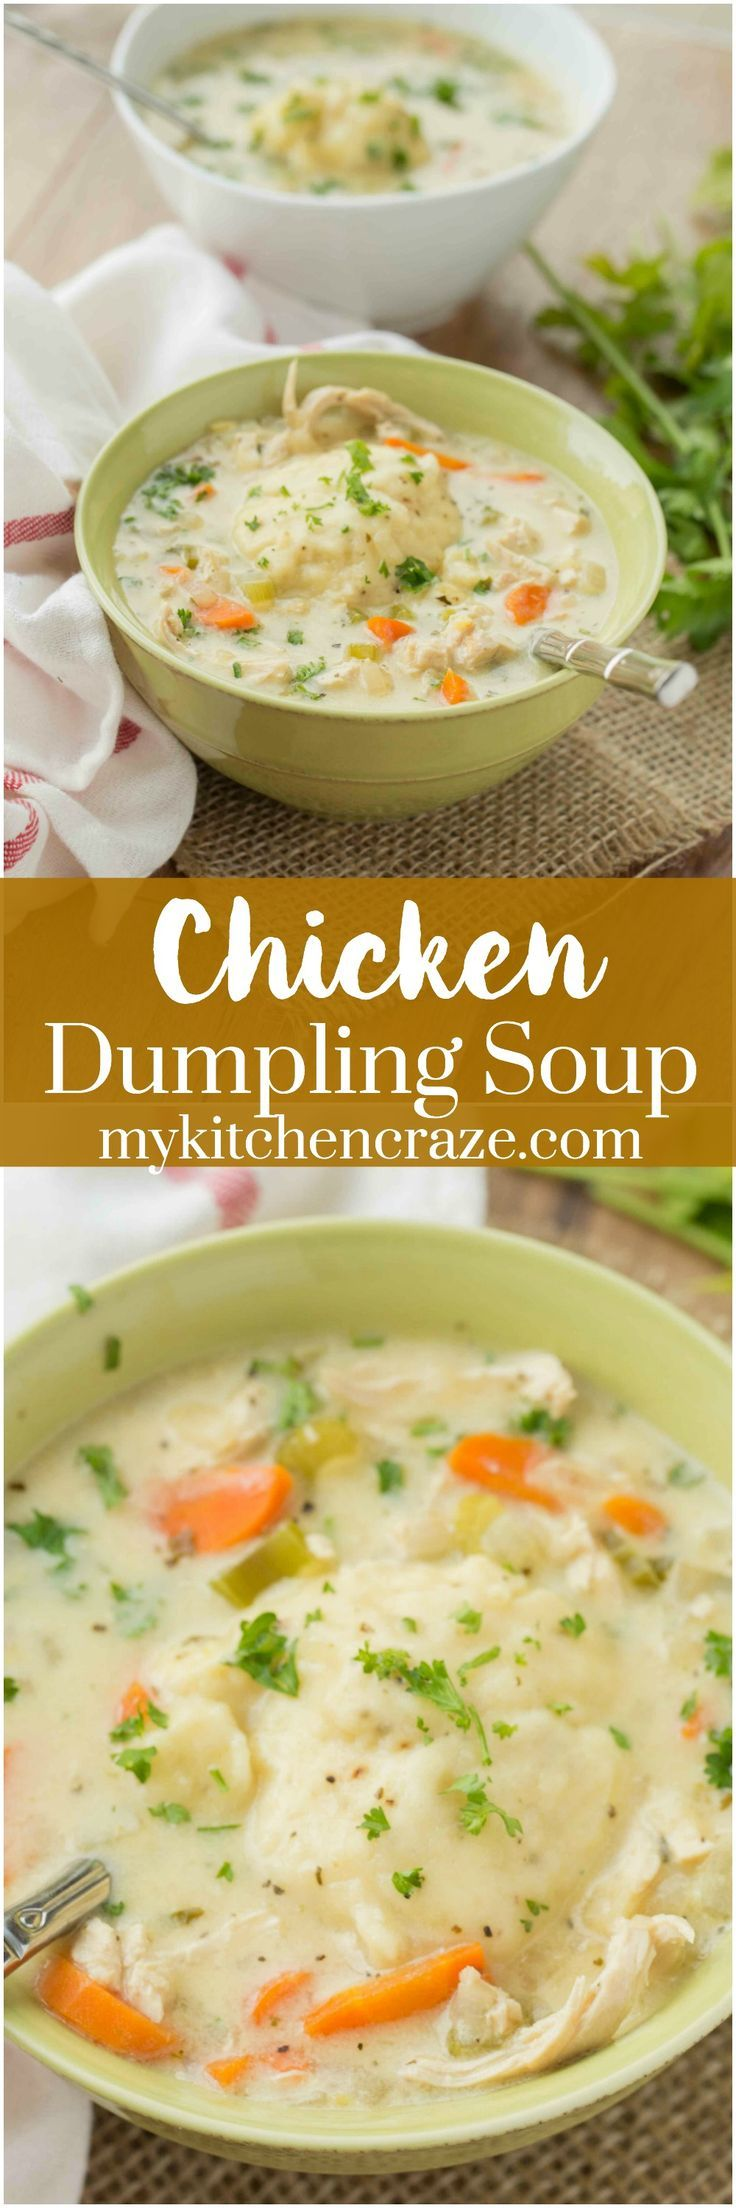 Chicken Dumpling Soup is a traditional comfort soup! Perfect for those cold, chilly days when you need something to warm you up. We don't get a ton of cold days here in Vegas, but when we do, you better believe that I'm whipping up a big bowl of soup and